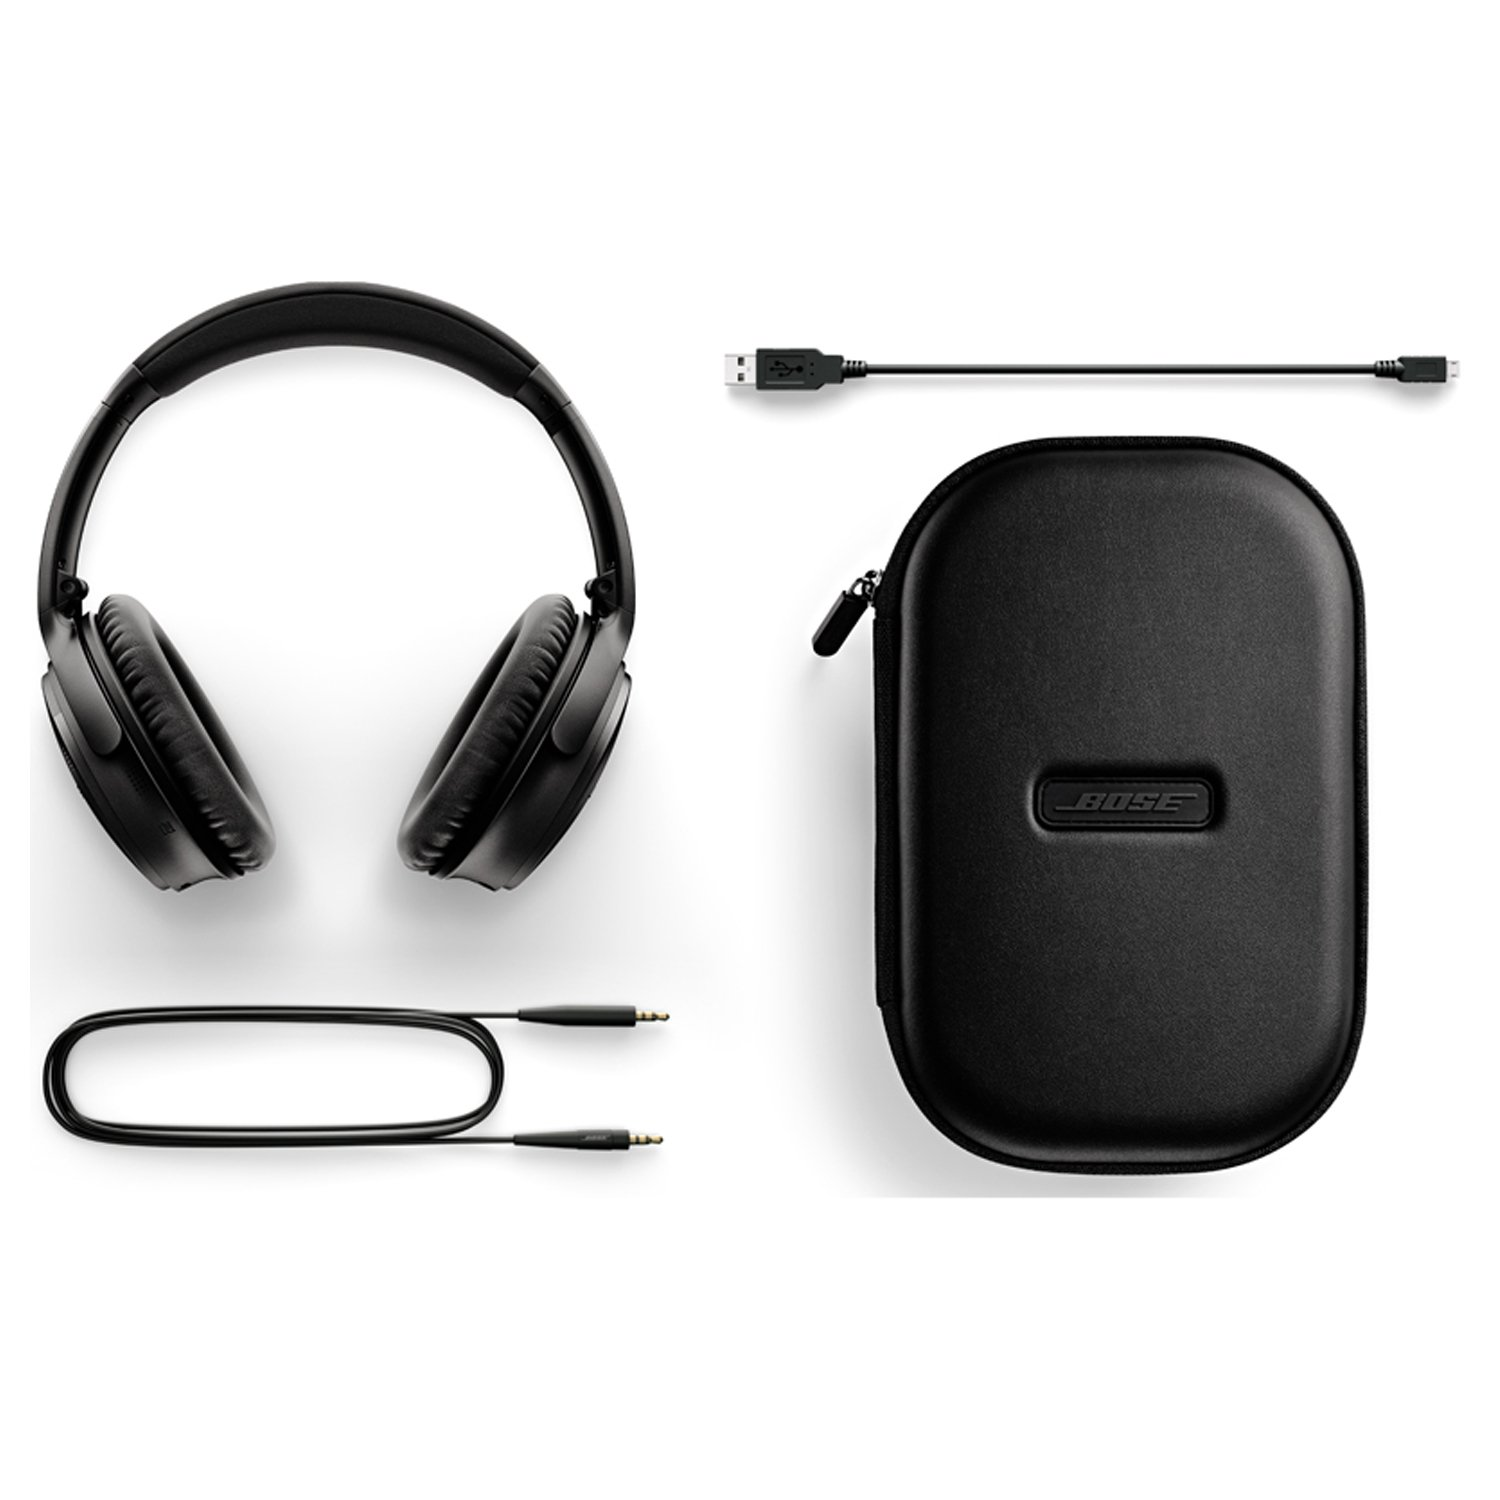 Wiring Diagram Building Noise Canceling Headphones Microphone Corded Headset 11 Best Over Ear Active Cancelling With Bluetooth Capability Which Have